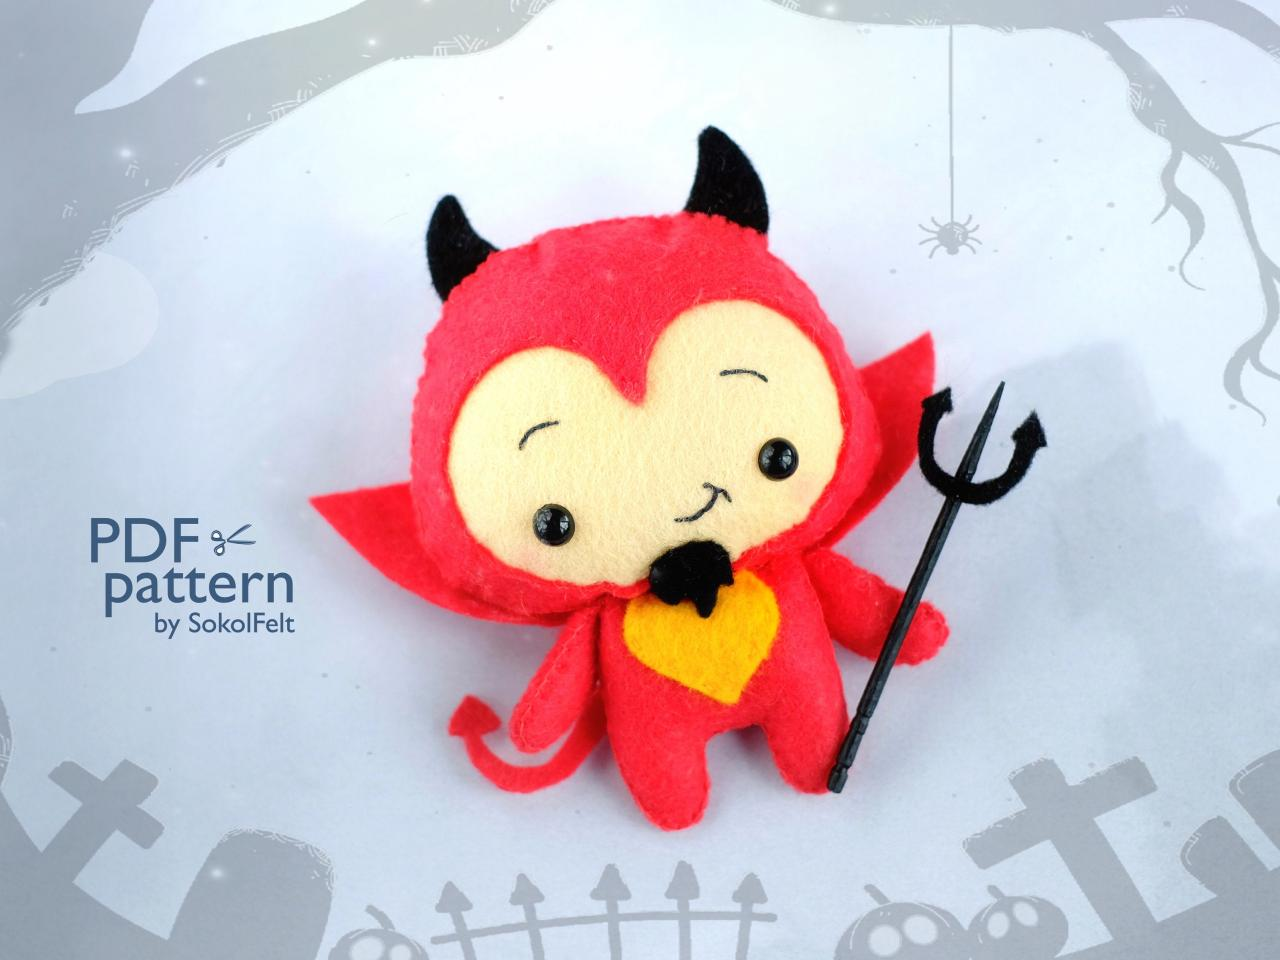 Cute devil toy sewing PDF pattern, Felt Halloween ornament, Easy to make Halloween toy